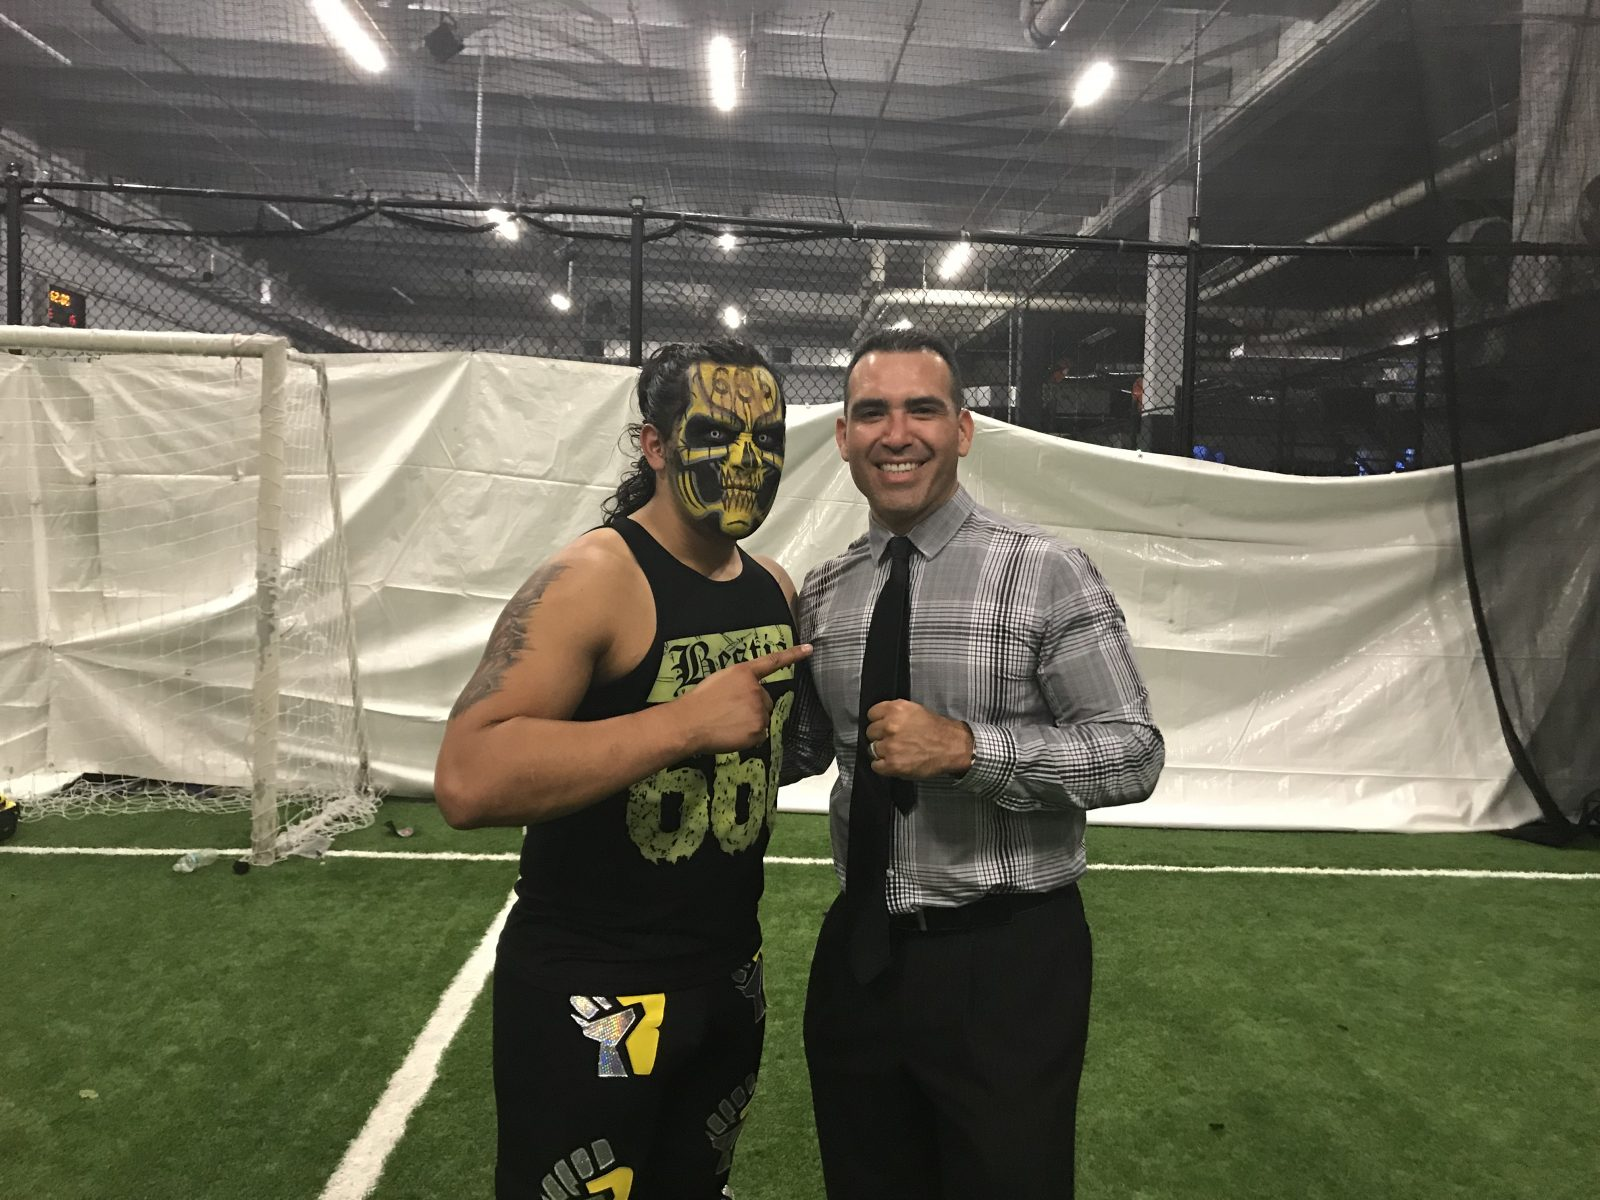 Bestia 666 talks Rey Mysterio becoming co-owner of Aro Lucha